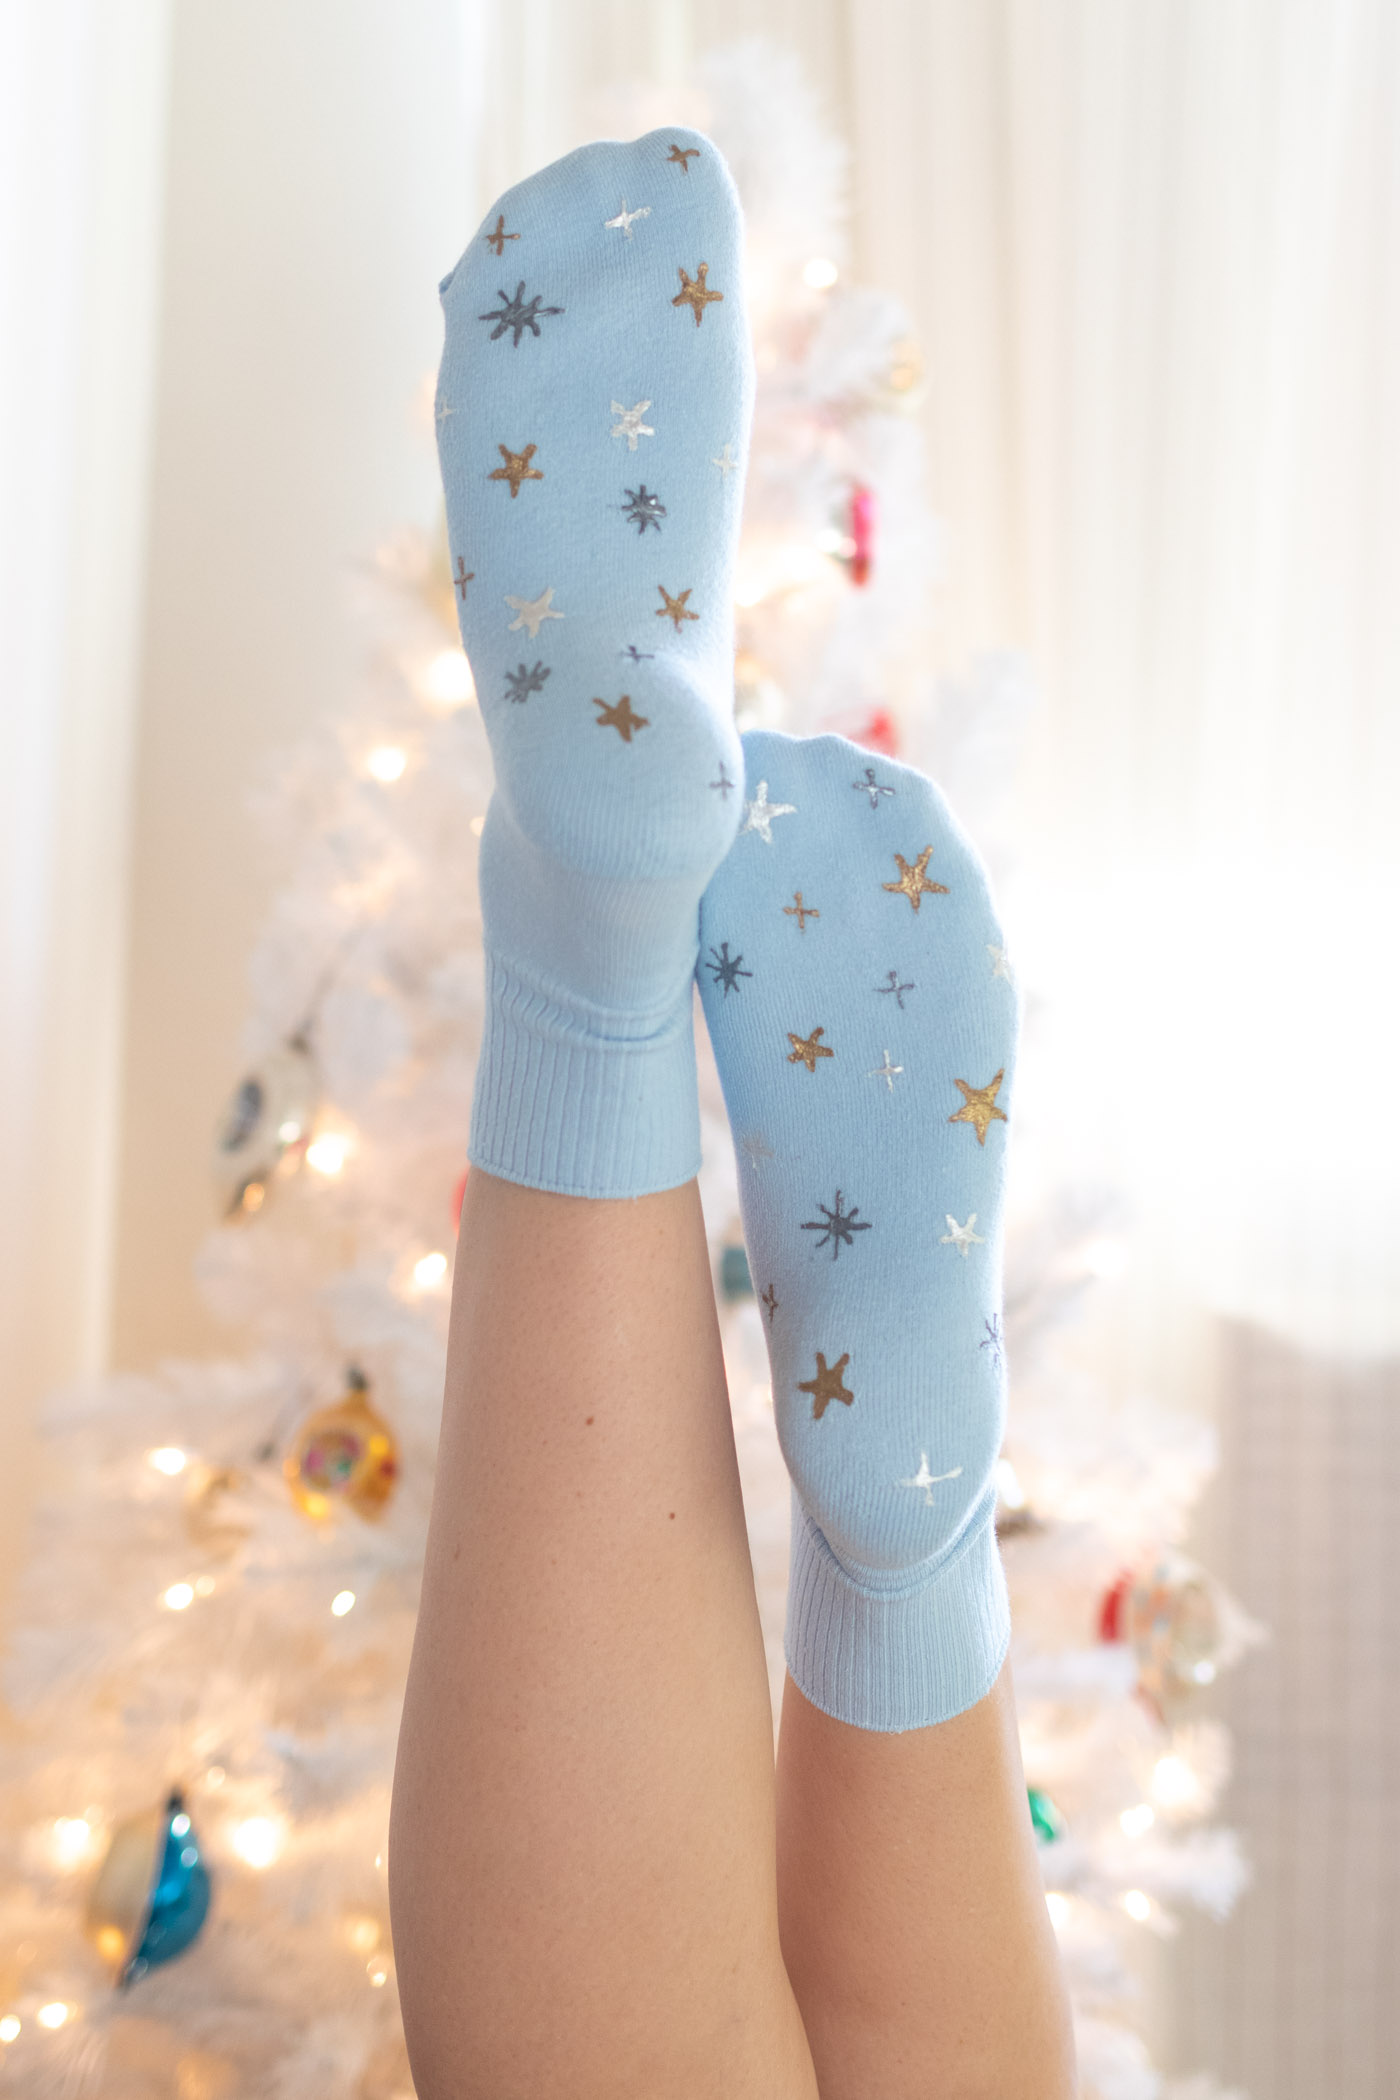 DIY Starry Painted Grip Socks // Make your own grip socks using Tulip Dimensional Paints! Add a holiday-themed star pattern in metallic paint for a fun DIY gift or to keep you cozy during cold weather! #ad #painting #puffypaint #socks #giftideas #christmas #holidayseason